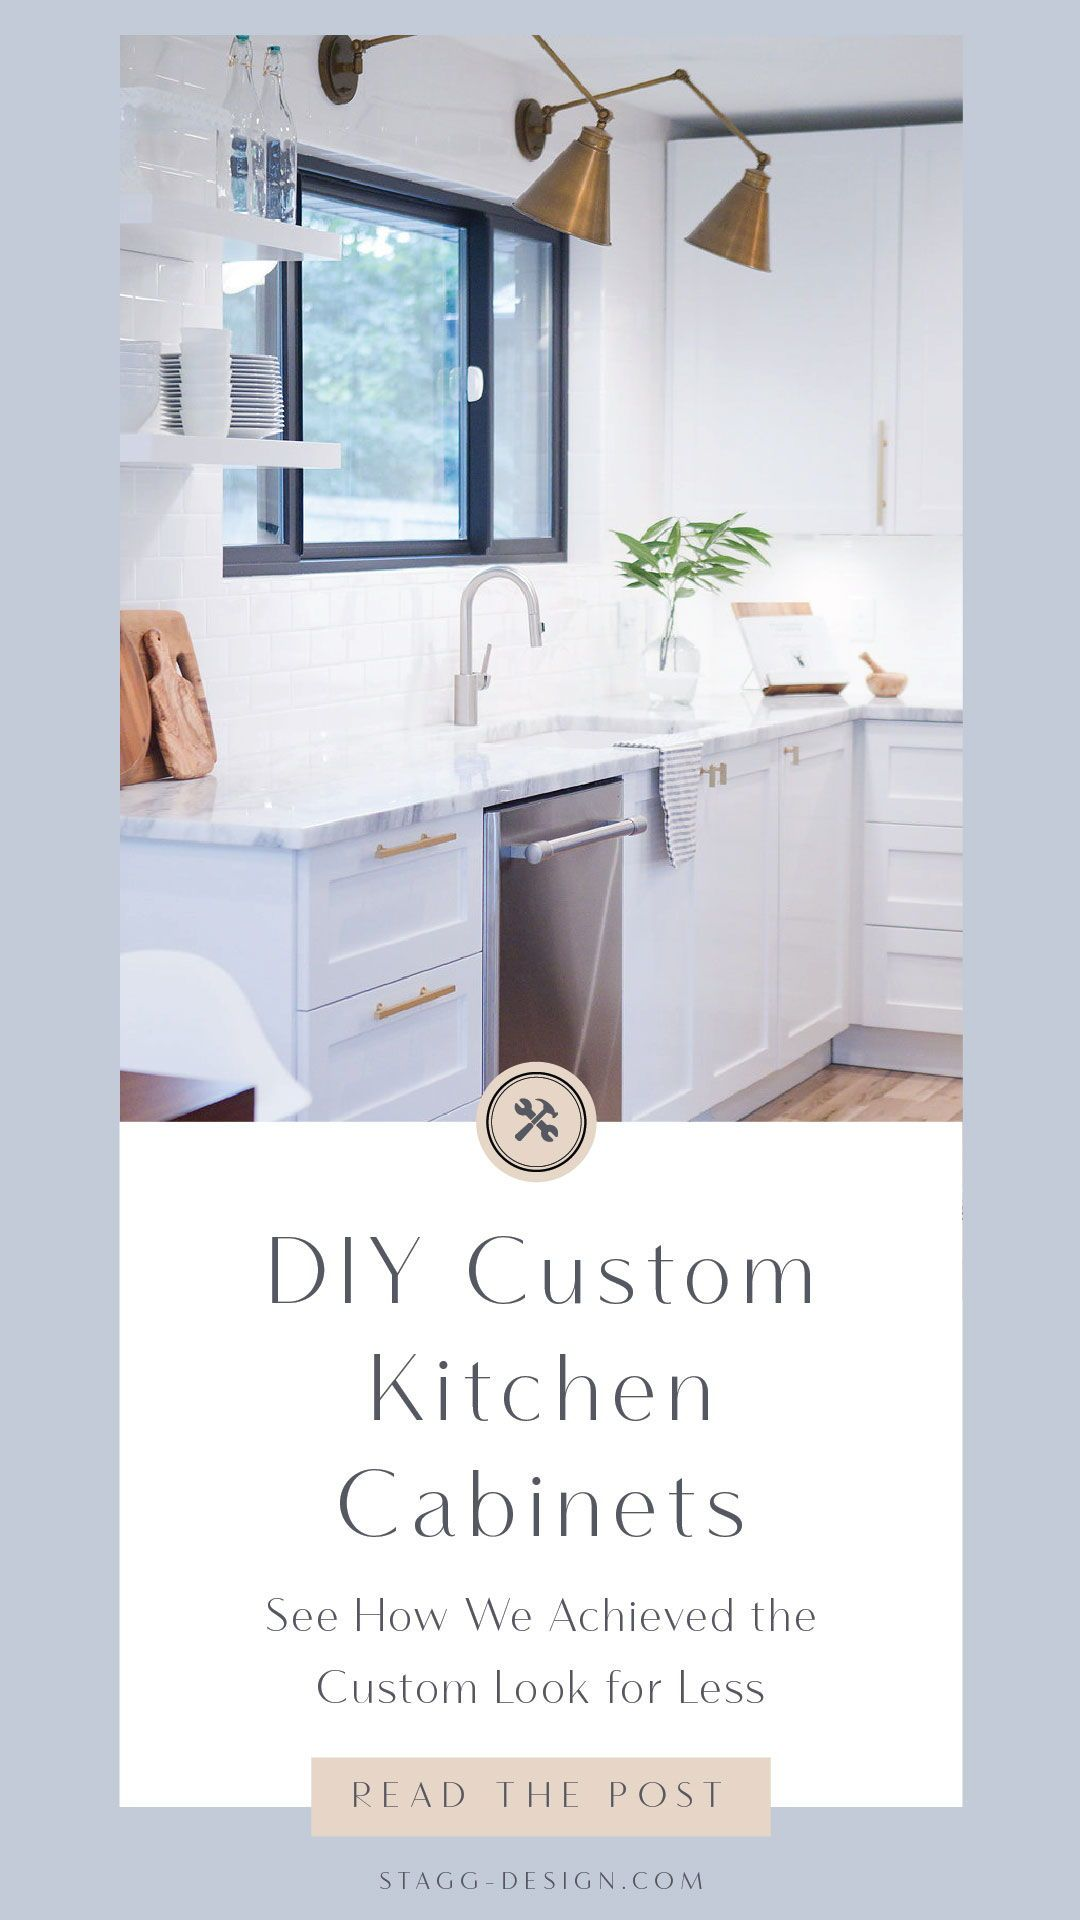 Diy Custom Kitchen Cabinets Stagg Design A Utah Based Interior Design Firm Custom Kitchen Cabinets Design Custom Kitchens Design Custom Kitchen Cabinets